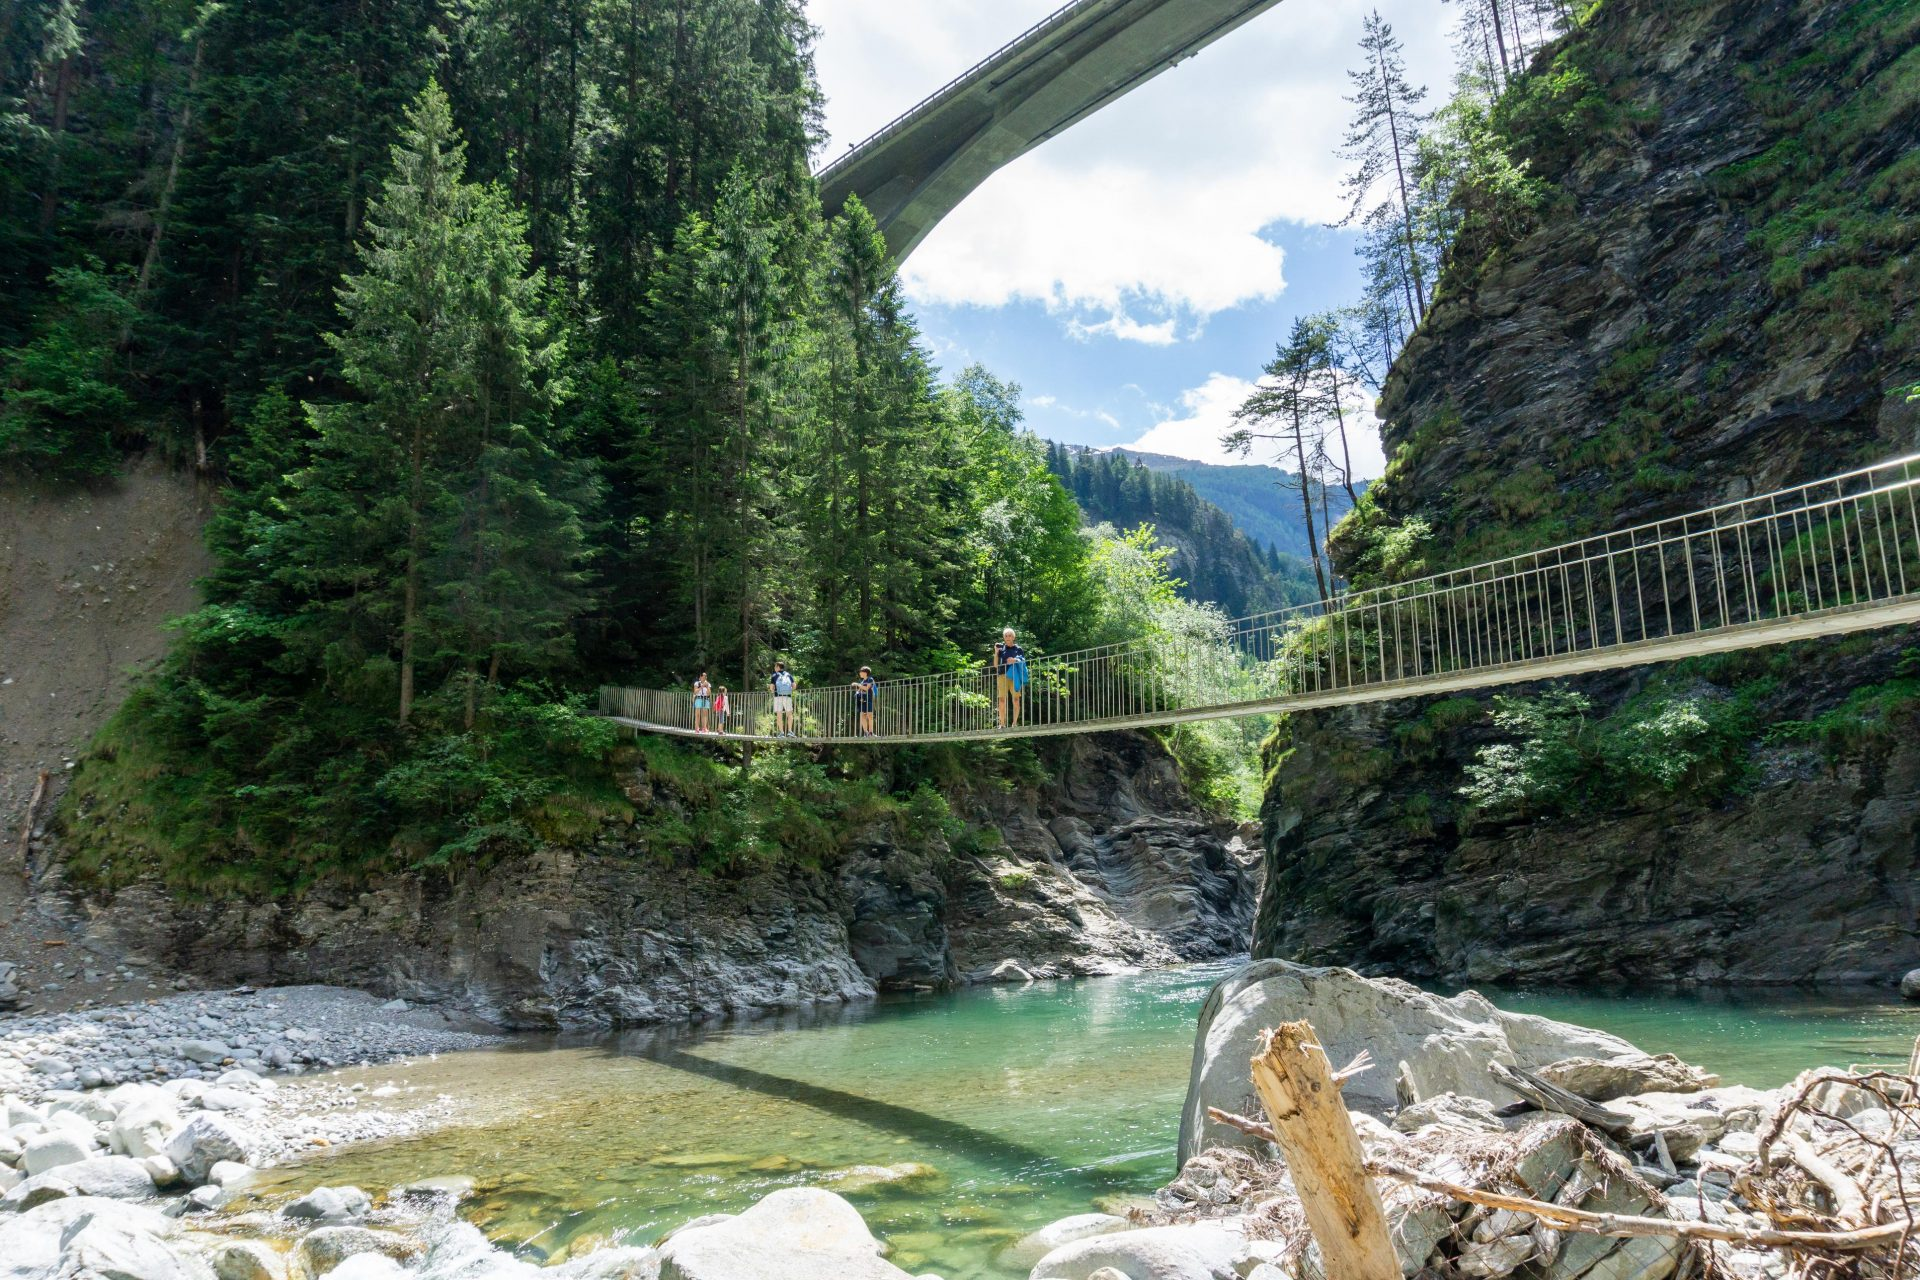 Family hiking across a wooden suspension bridge over the Rhine River in the Viamala Gorge in the Swis Alps